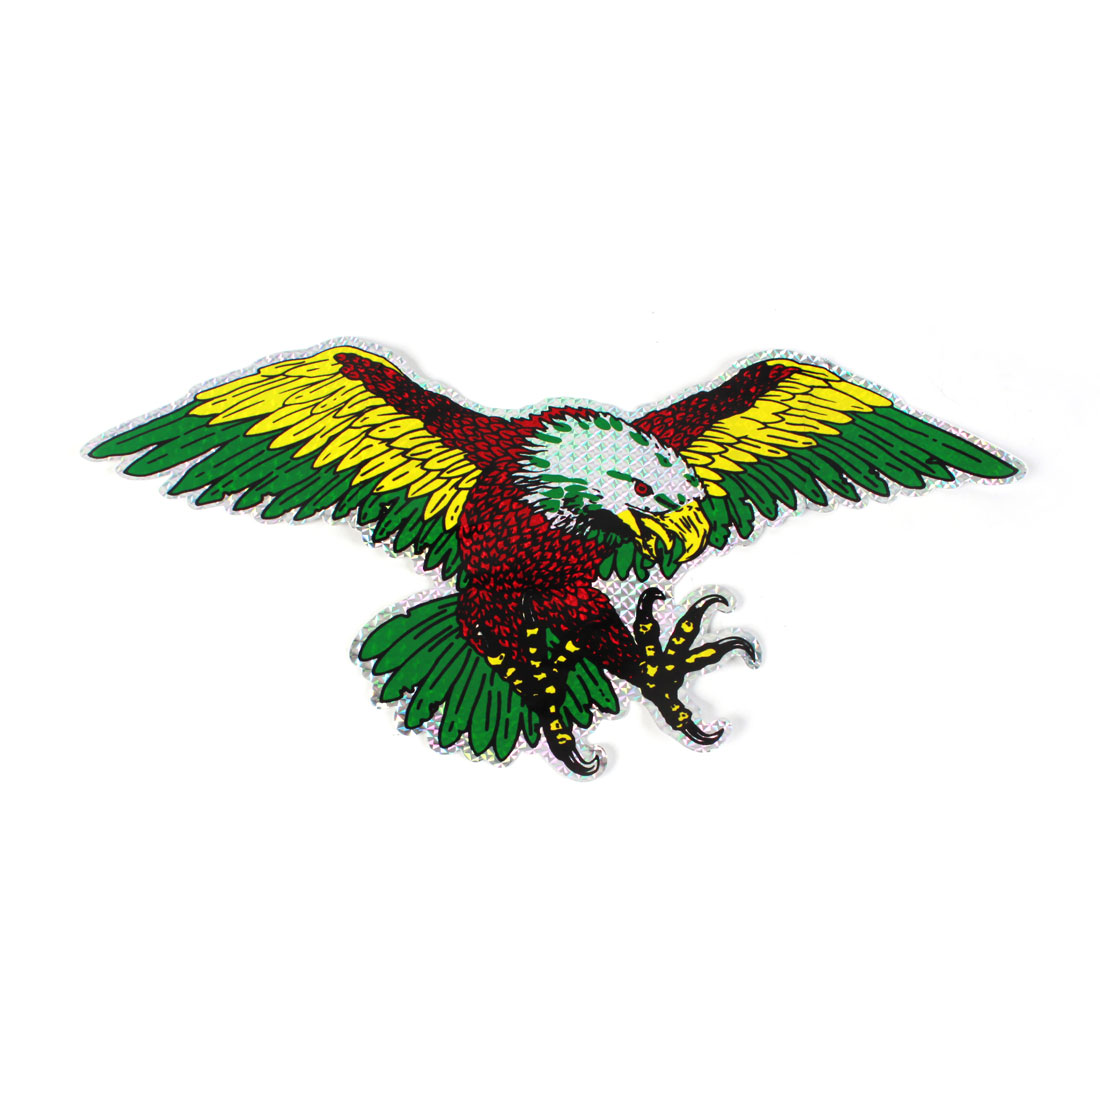 Car Vehicles Decor Adhesive Eagles Stickers Decals Tricolor 2 Pcs